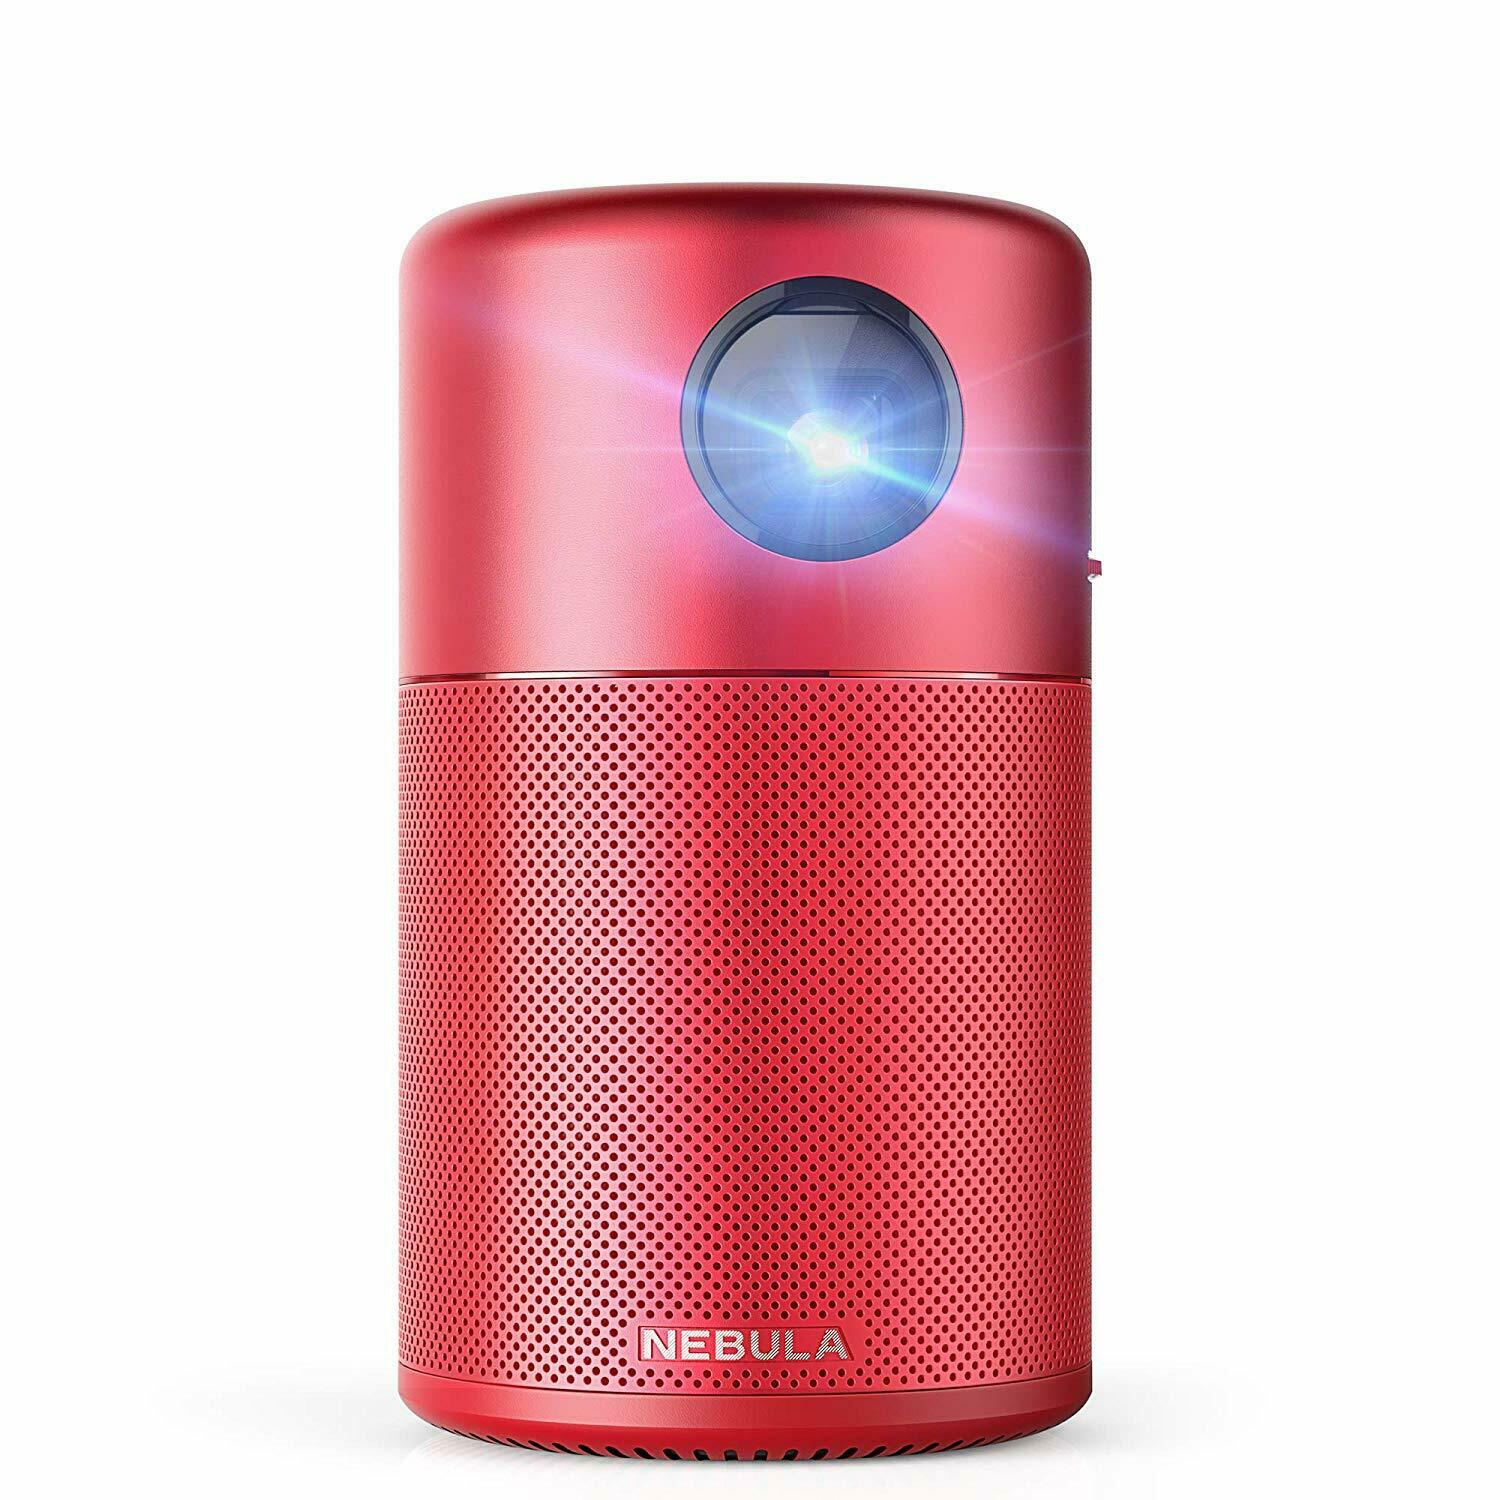 Nebula Capsule Smart Mini Projector, by Anker, Portable 100